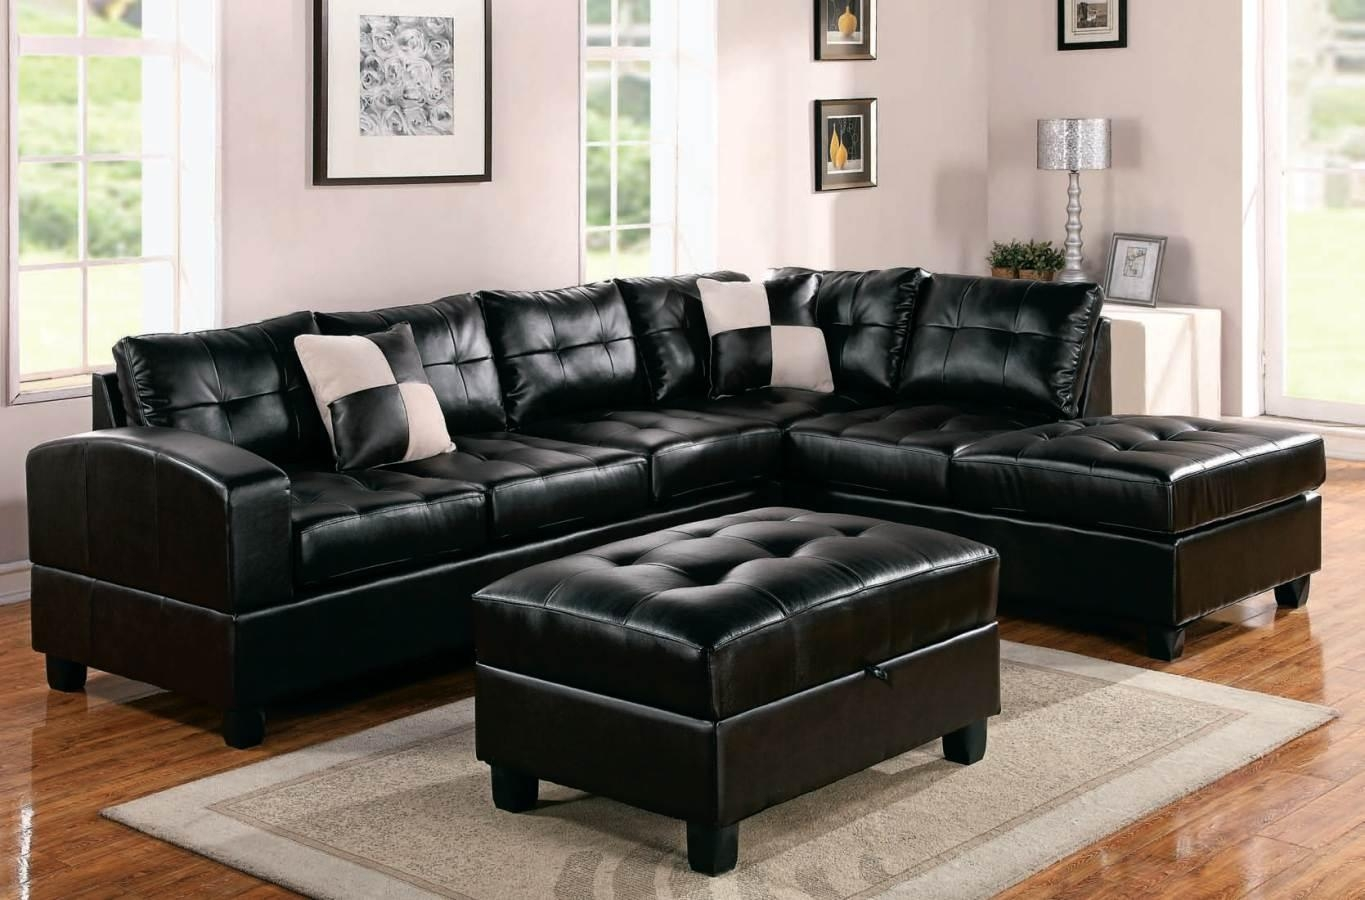 recliner sectional sleeper sofa modular 1 lugar 21 collection of black leather sofas